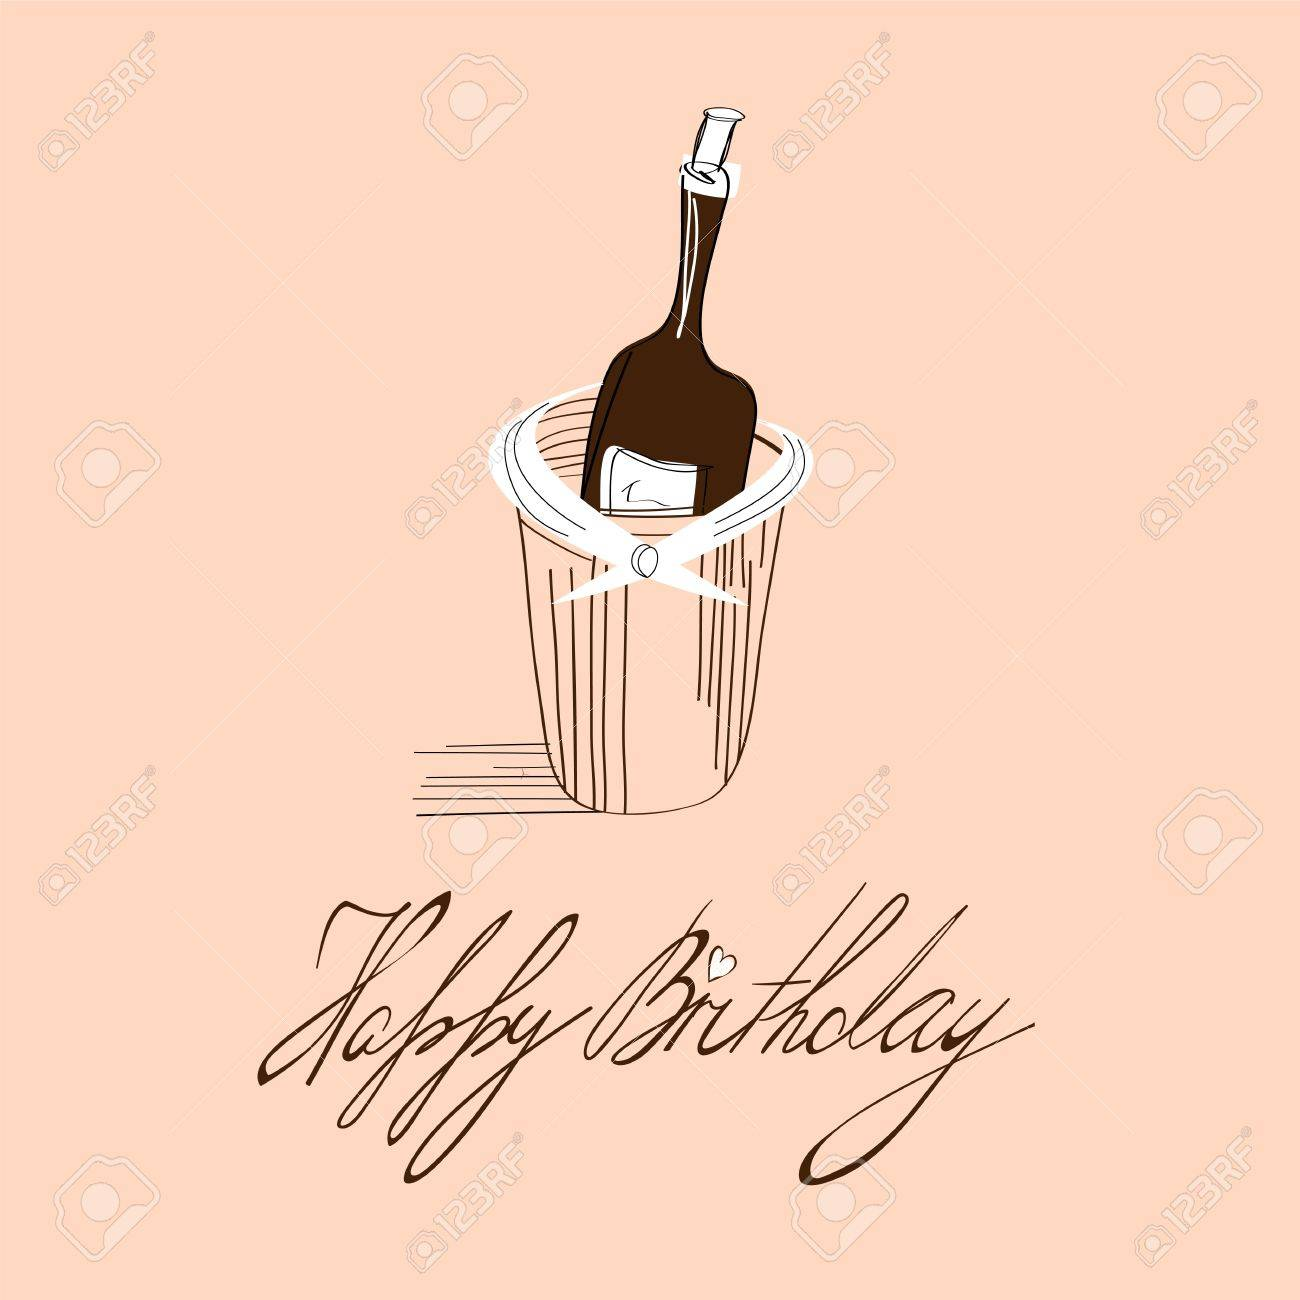 Template For Birthday Card With Inscription Happy Birthday Royalty – Template Happy Birthday Card